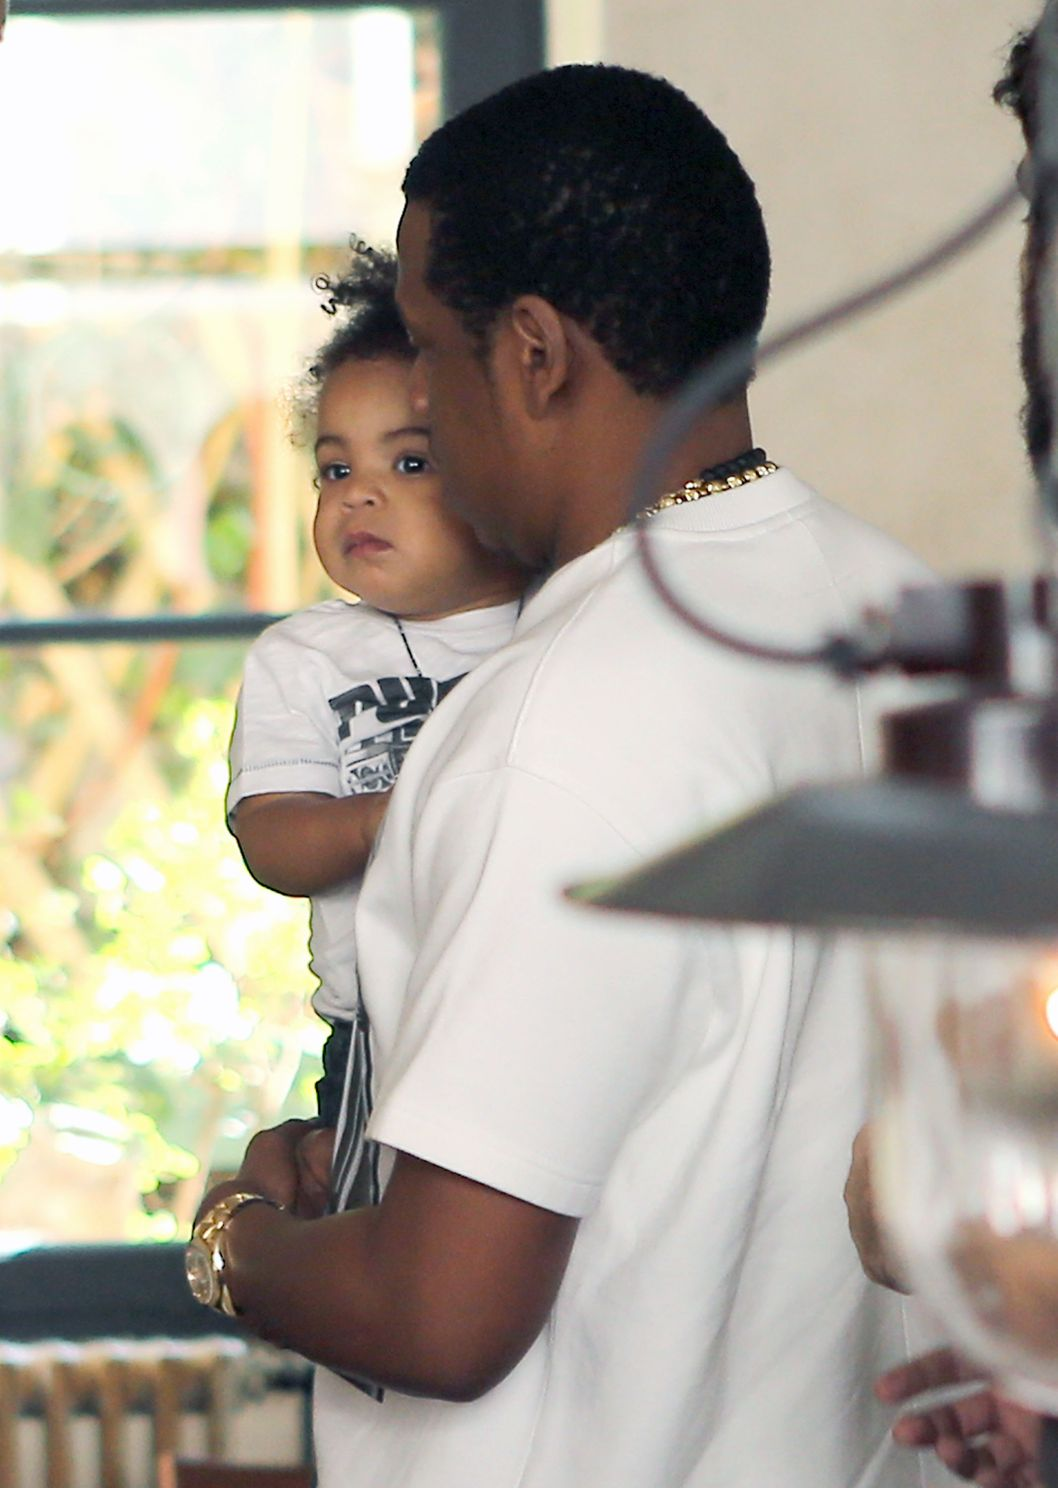 51078243 Rapper Jay Z takes his wife Beyonce Knowles and their daughter Blue Ivy to lunch at Szptime restaurant on April 25, 2013 in Paris, France. FameFlynet, Inc - Beverly Hills, CA, USA - +1 (818) 307-4813 RESTRICTIONS APPLY: USA ONLY